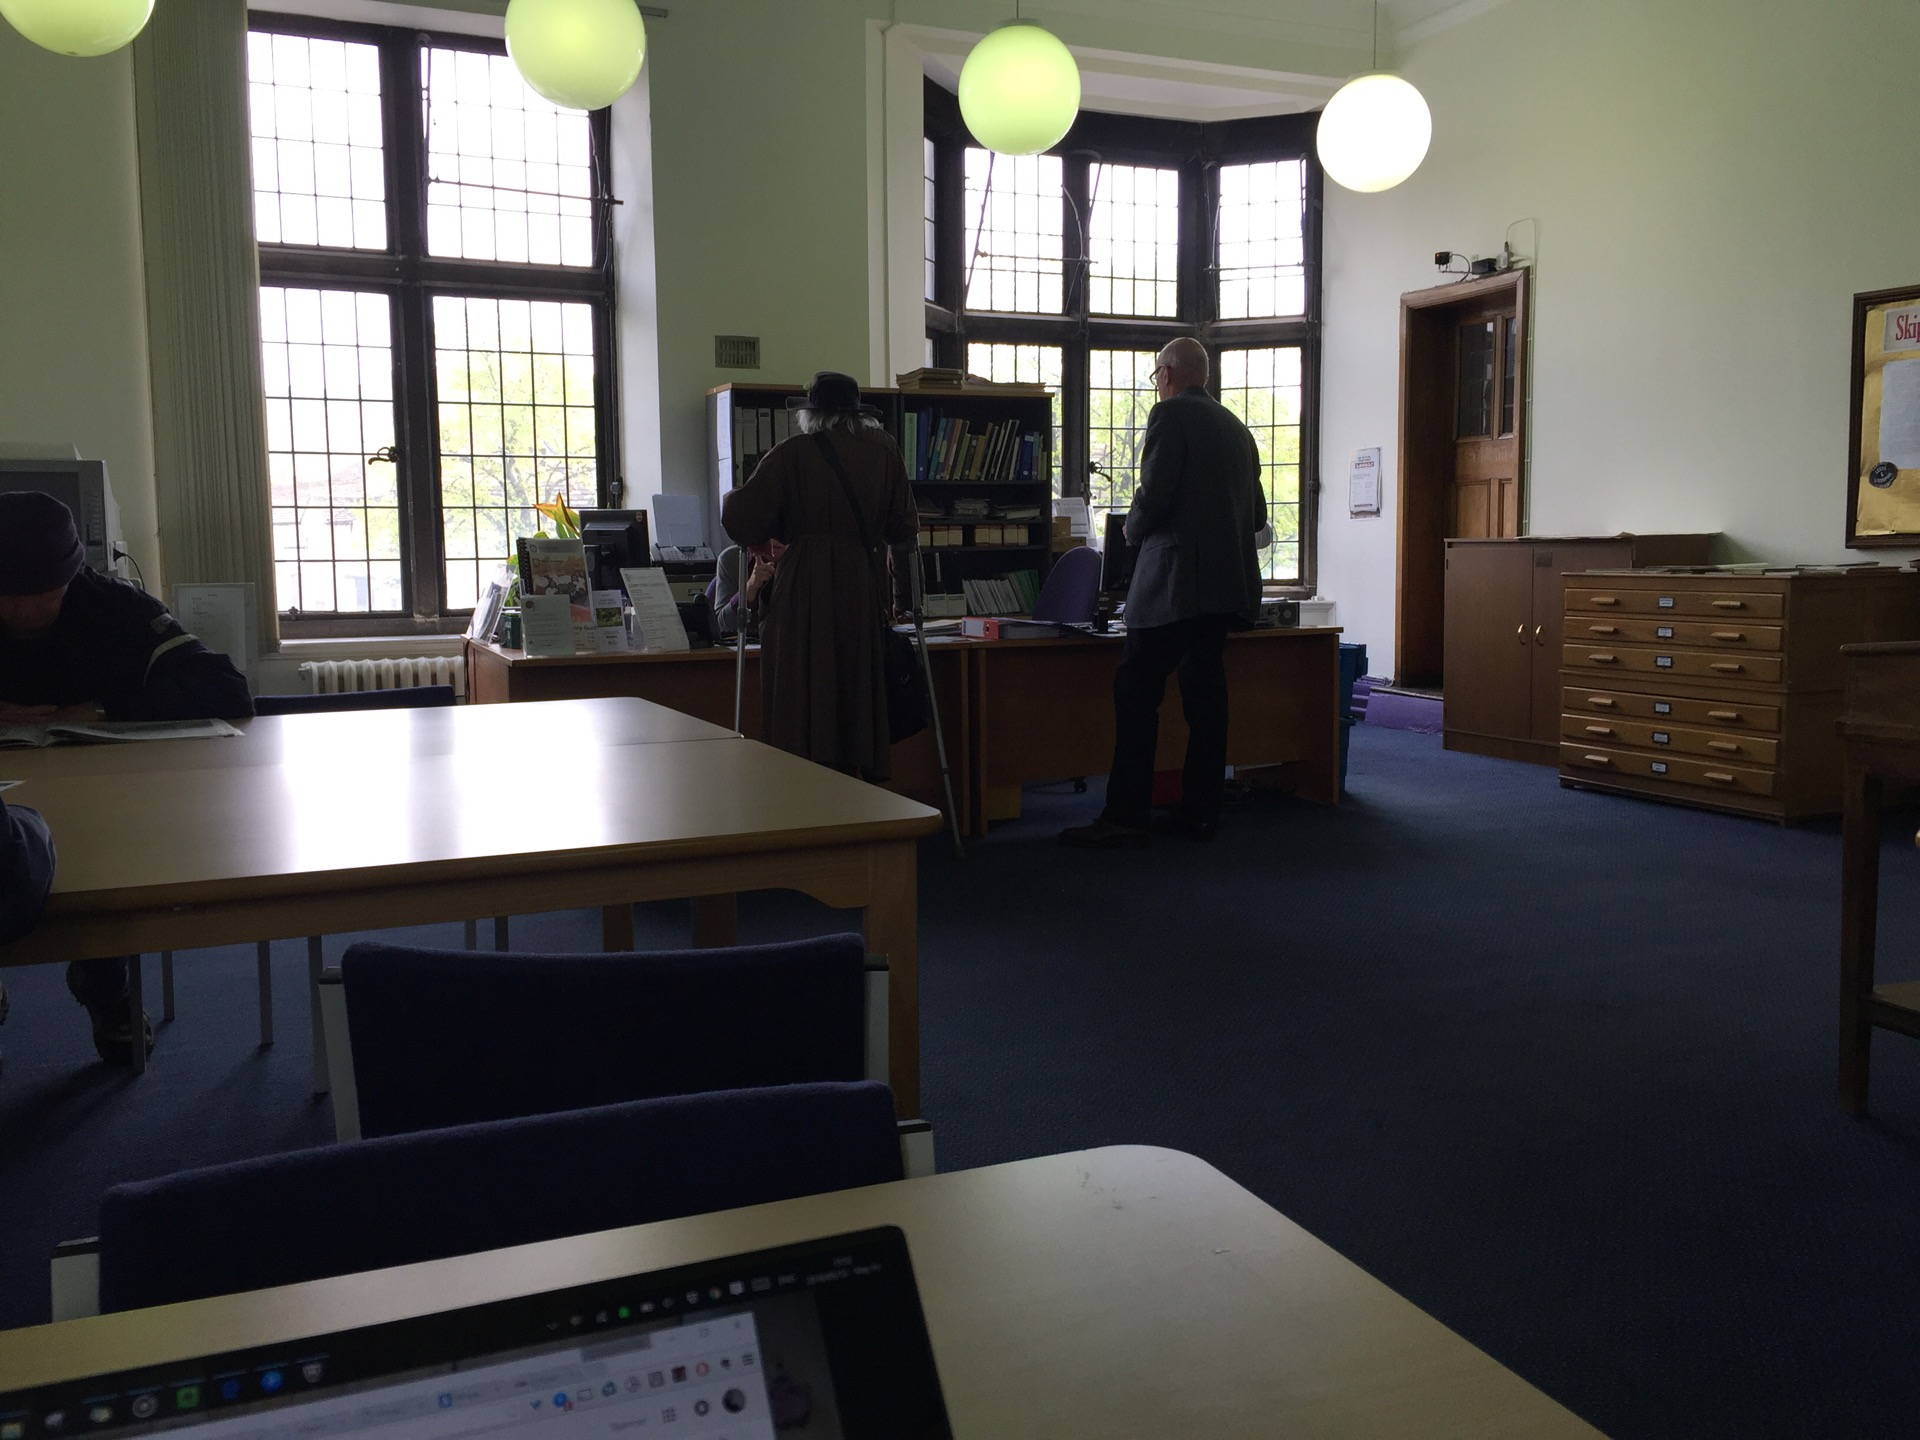 North Yorkshire County Council Skipton library | High St, Skipton BD23 1JY | +44 1756 794726